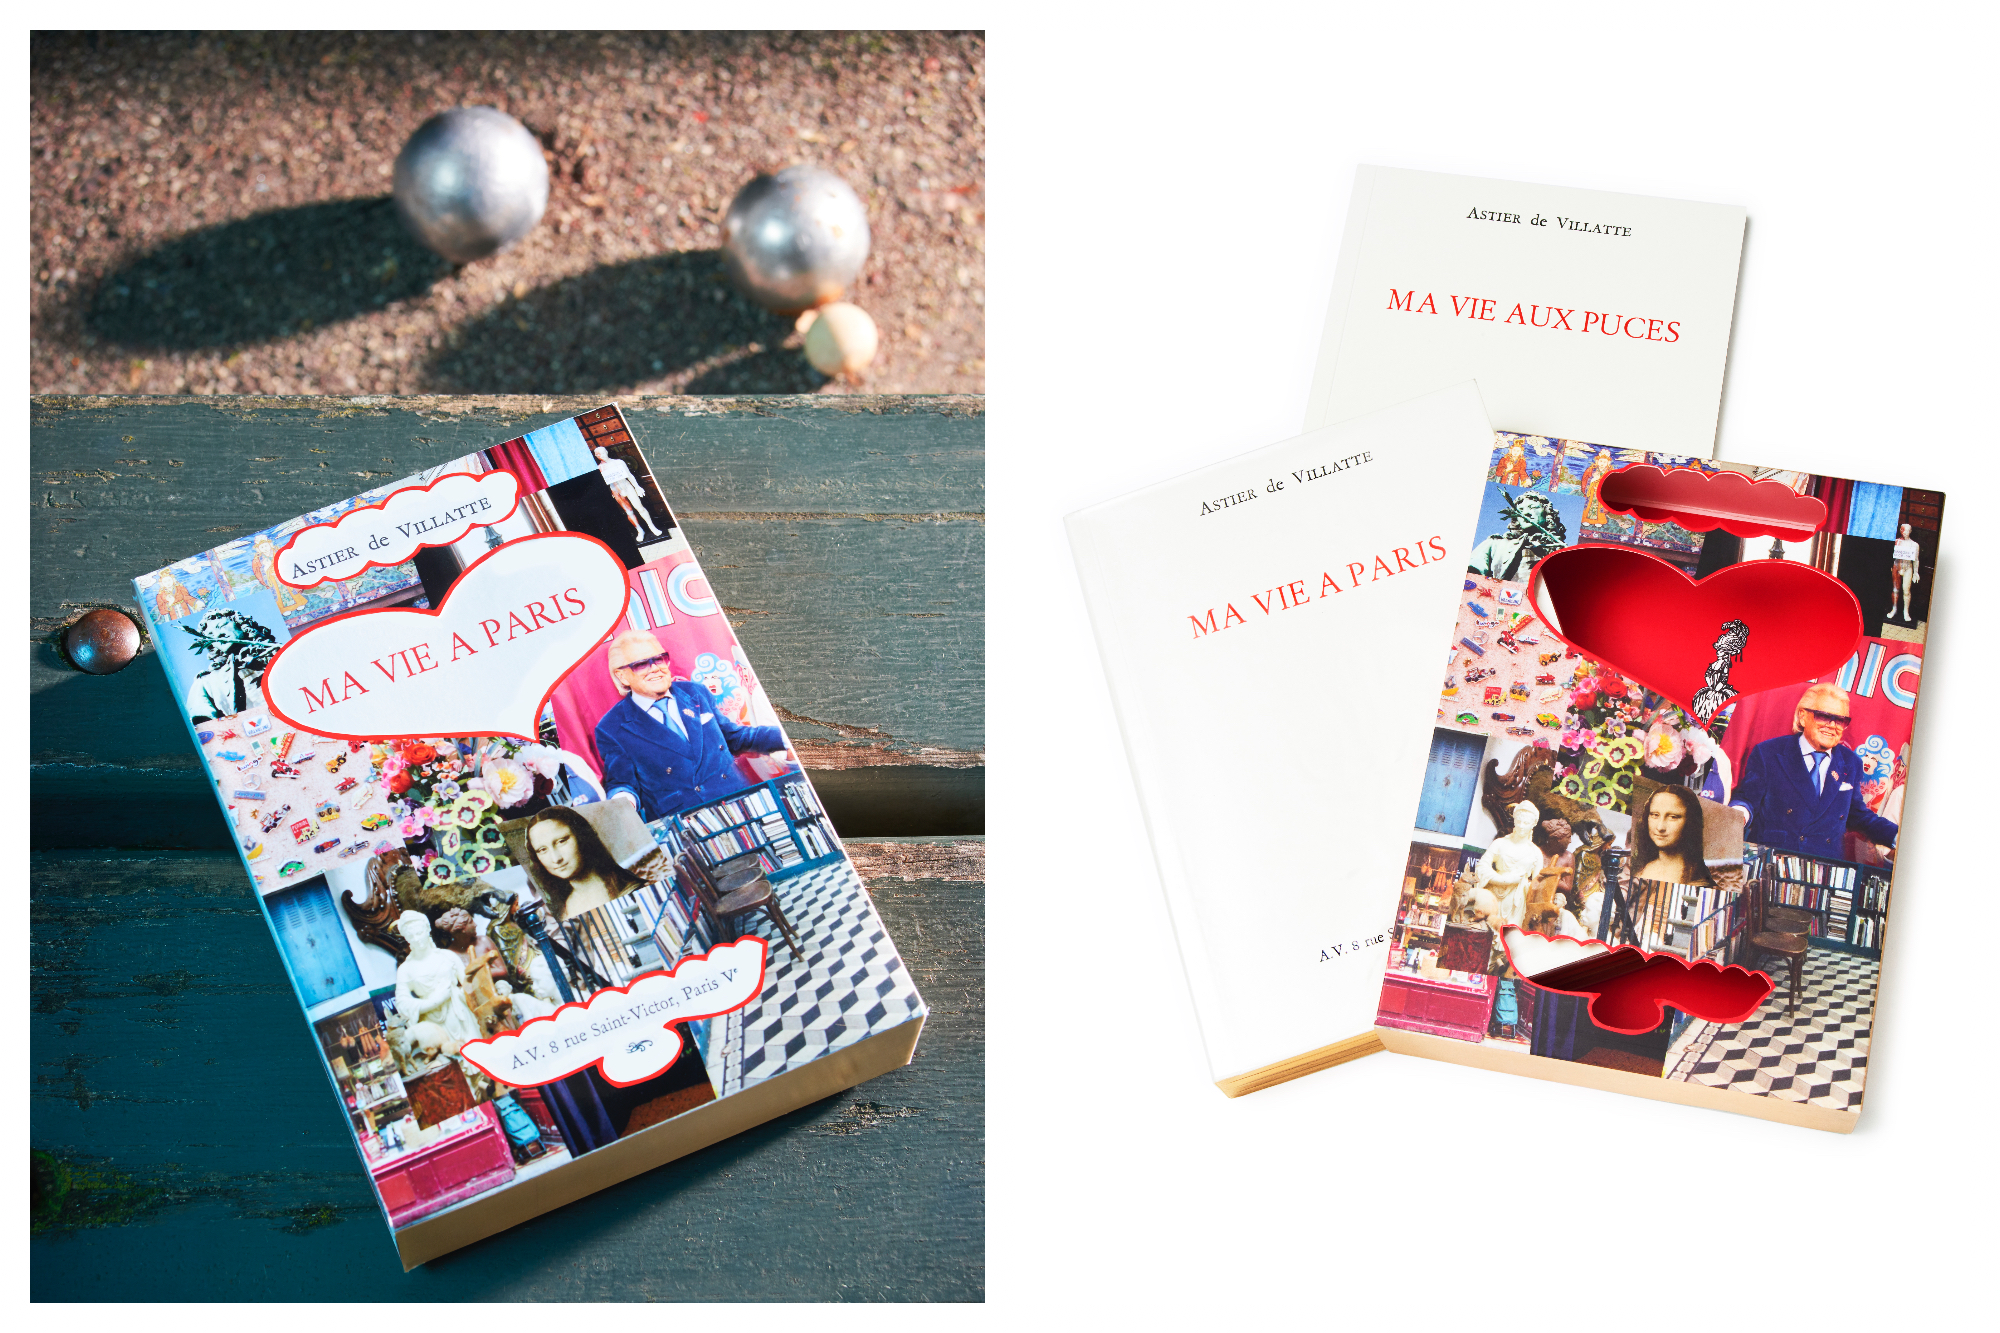 On the left is a copy of Astier de Villate's Ma Vie a Paris, sat on a wooden bench, below which are a few Petanque balls on sandy ground. On the right are a copies of Ma Vie a Paris and Ma Vie Aux Puces.